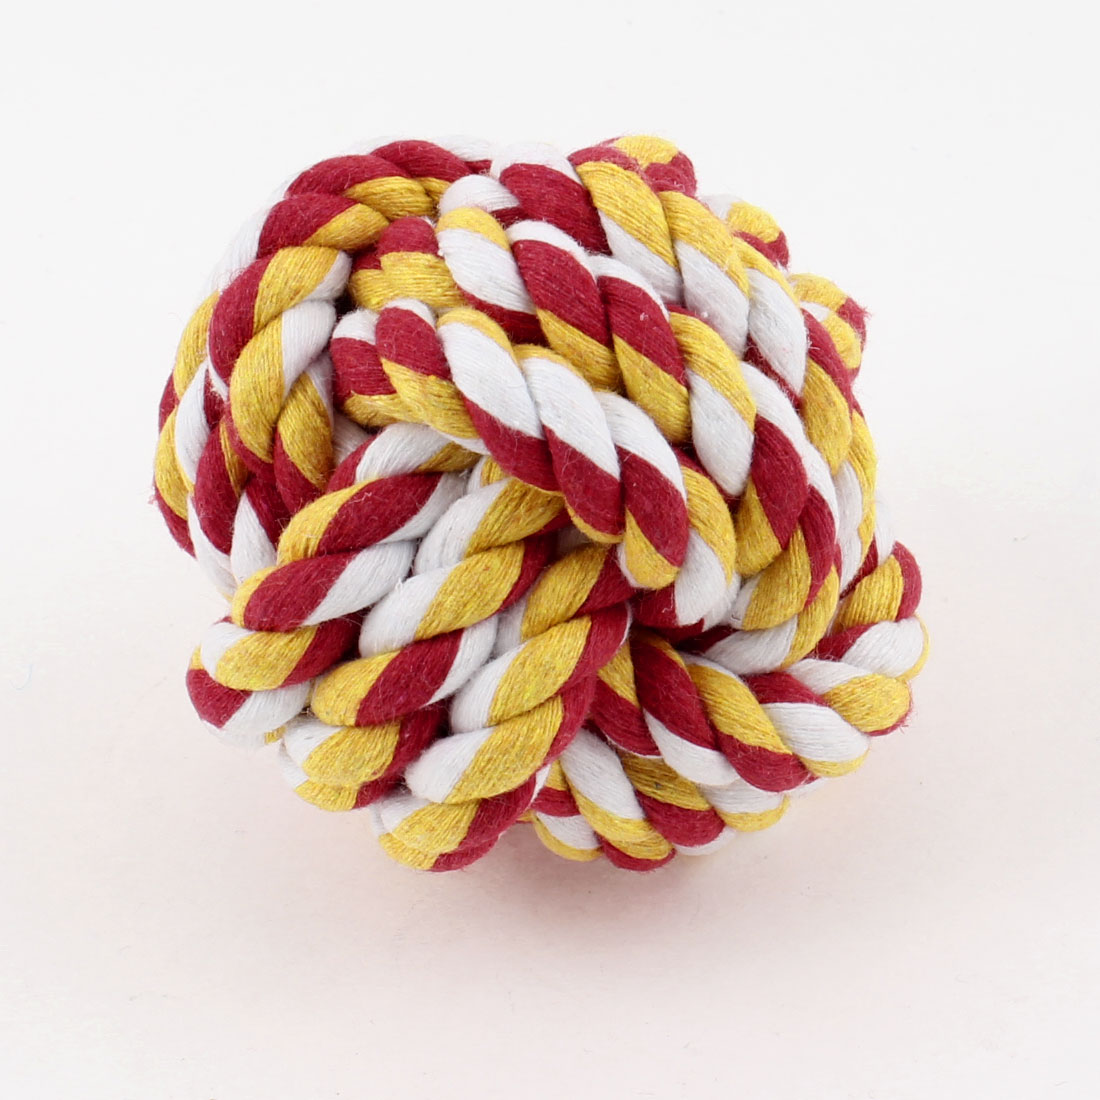 Pet Puppy 65mm Rope Ball Toy Red White Yellow Cotton Cord Twisting Roll